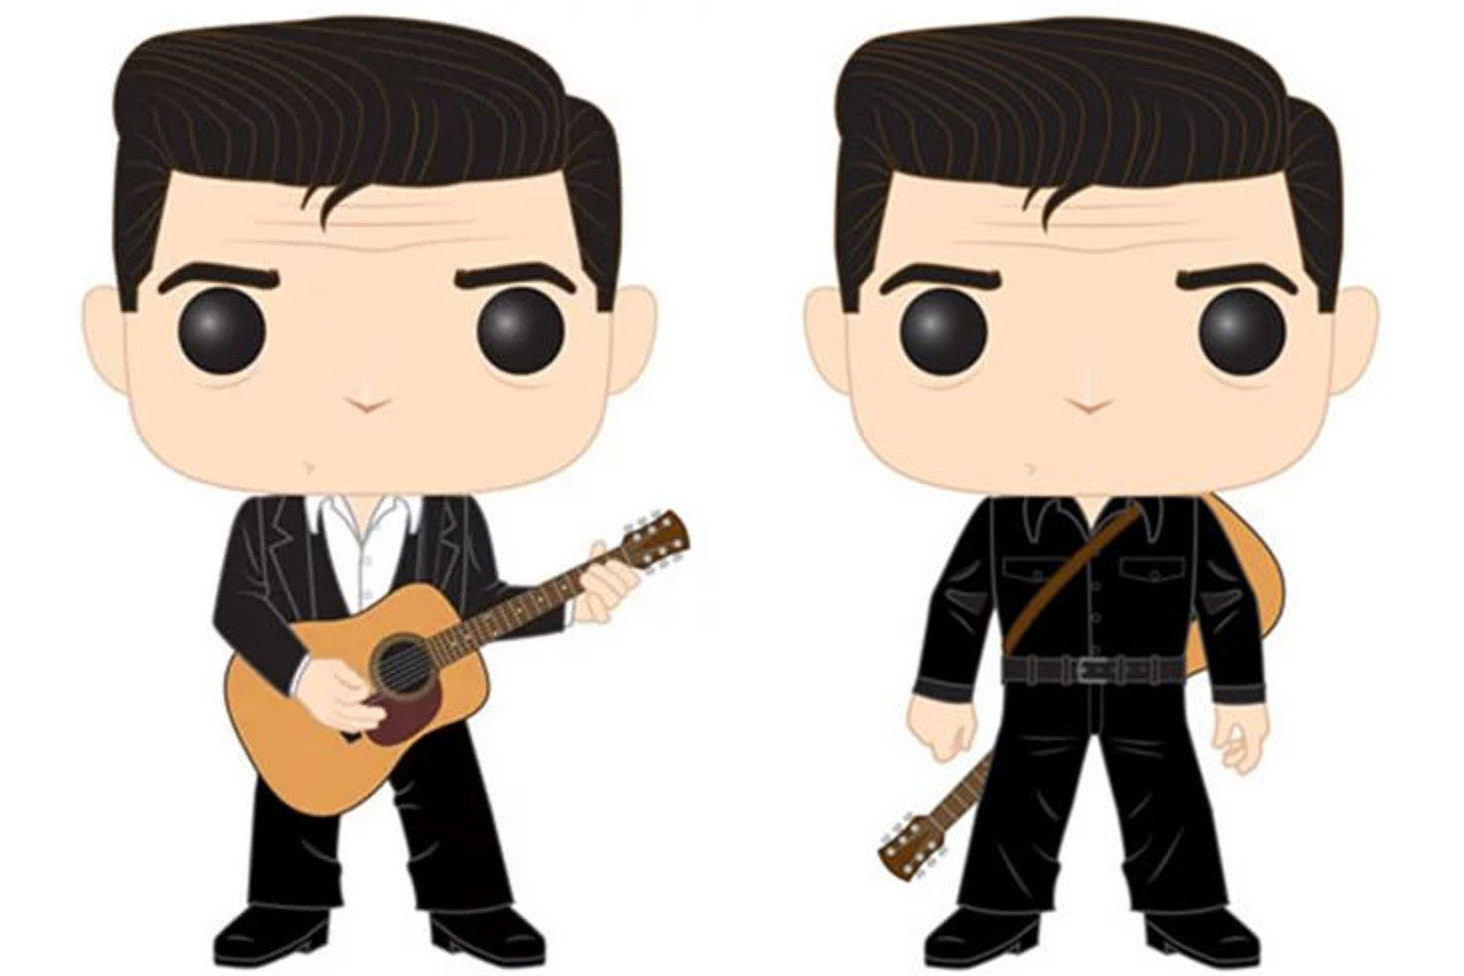 Johnny Cash Pool Song Johnny Cash Being Made Into A Funko Pop